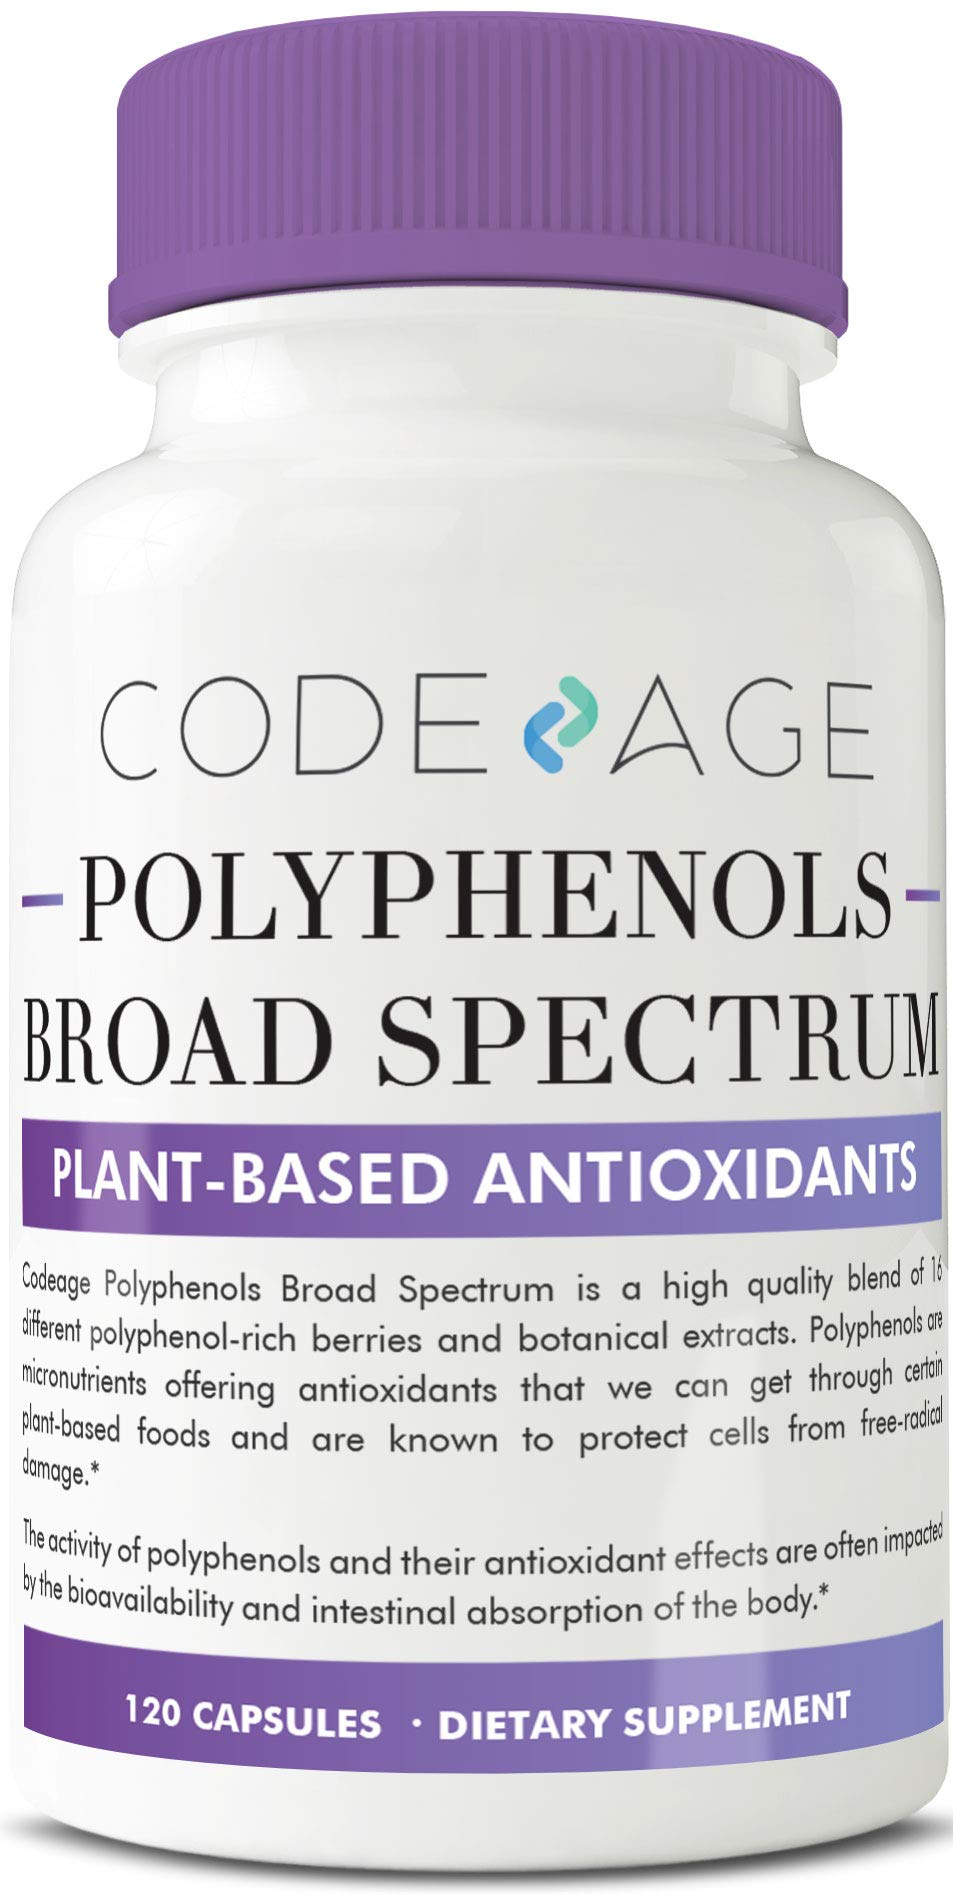 Codeage Protective Polyphenol Supplement Nutrients to Defend Against Free Radicals, Broad Spectrum Plant Based Antioxidants with Natural Resveratrol Non GMO, 120 Capsules by Codeage